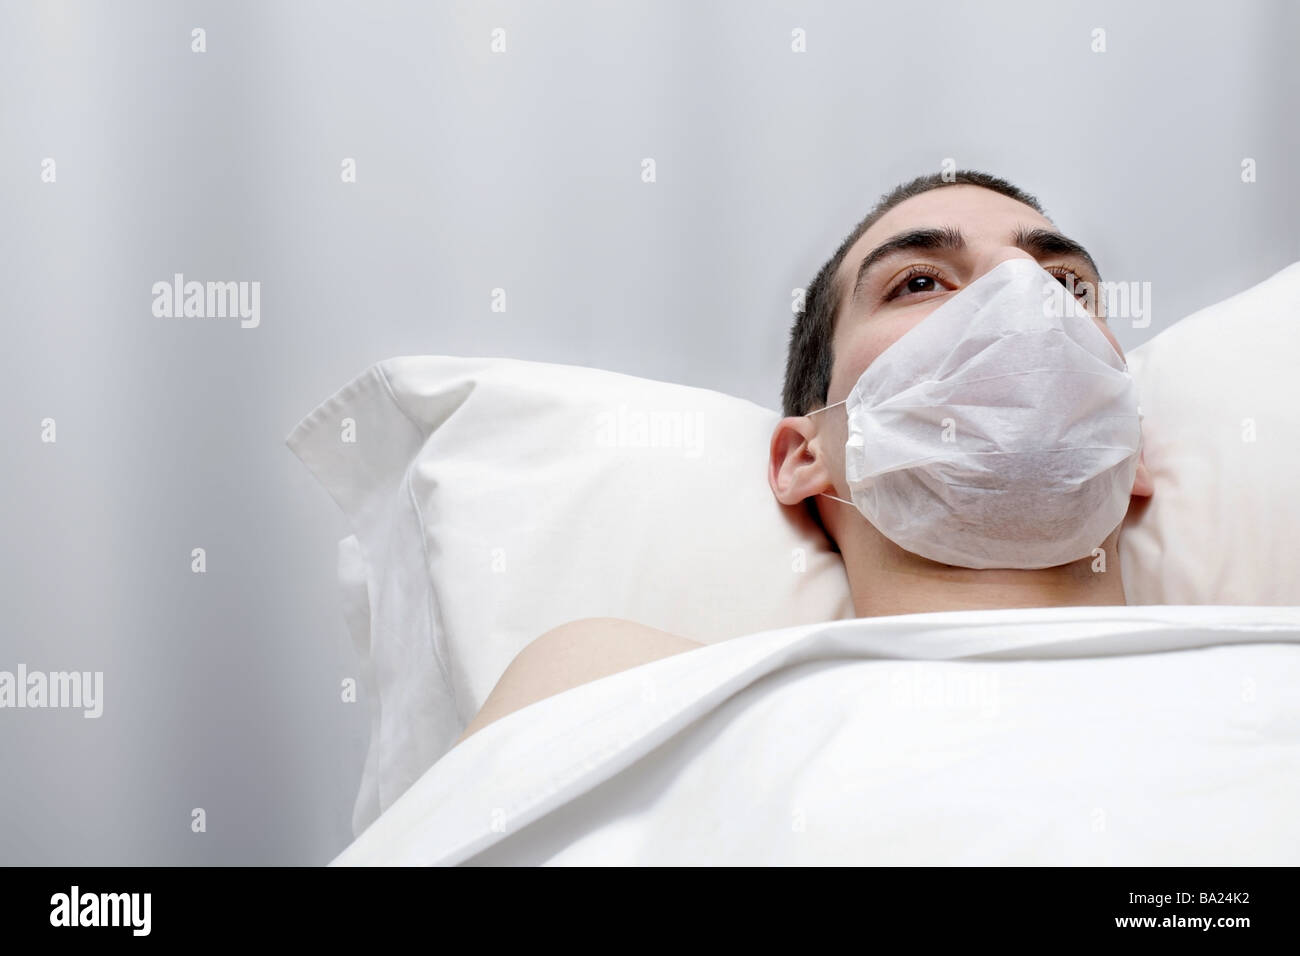 young male patient waiting for doctor healthcare - Stock Image